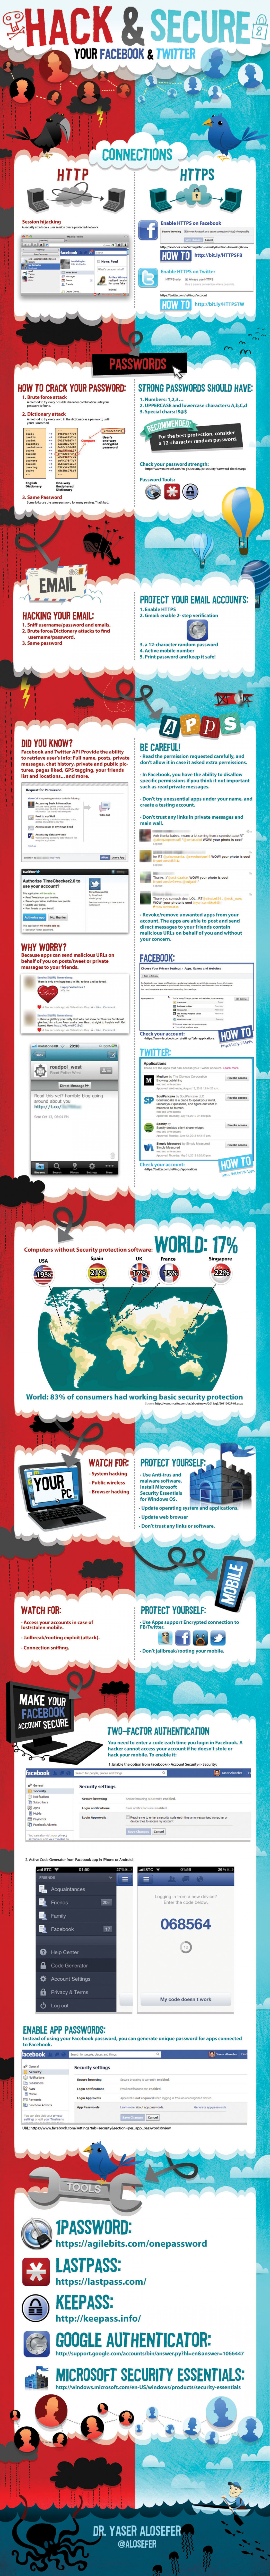 Secure and Hack your Facebook and Twitte (English) Infographic